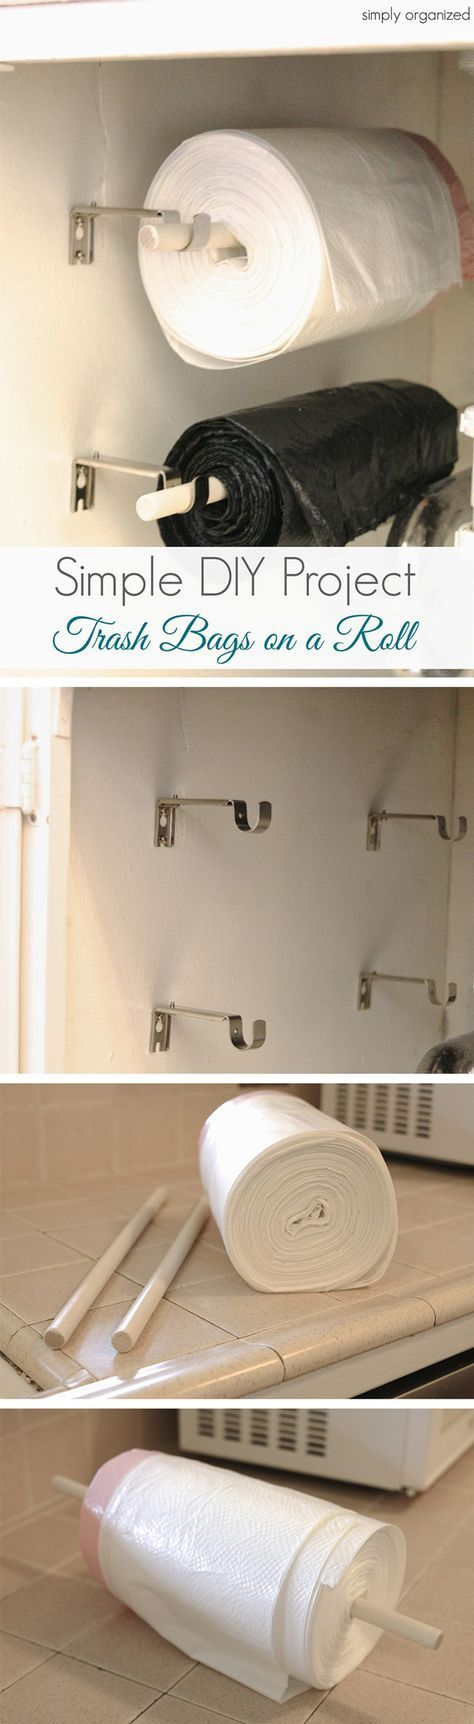 """This would free up valuable """"floor"""" space in the under-sink cabinet"""